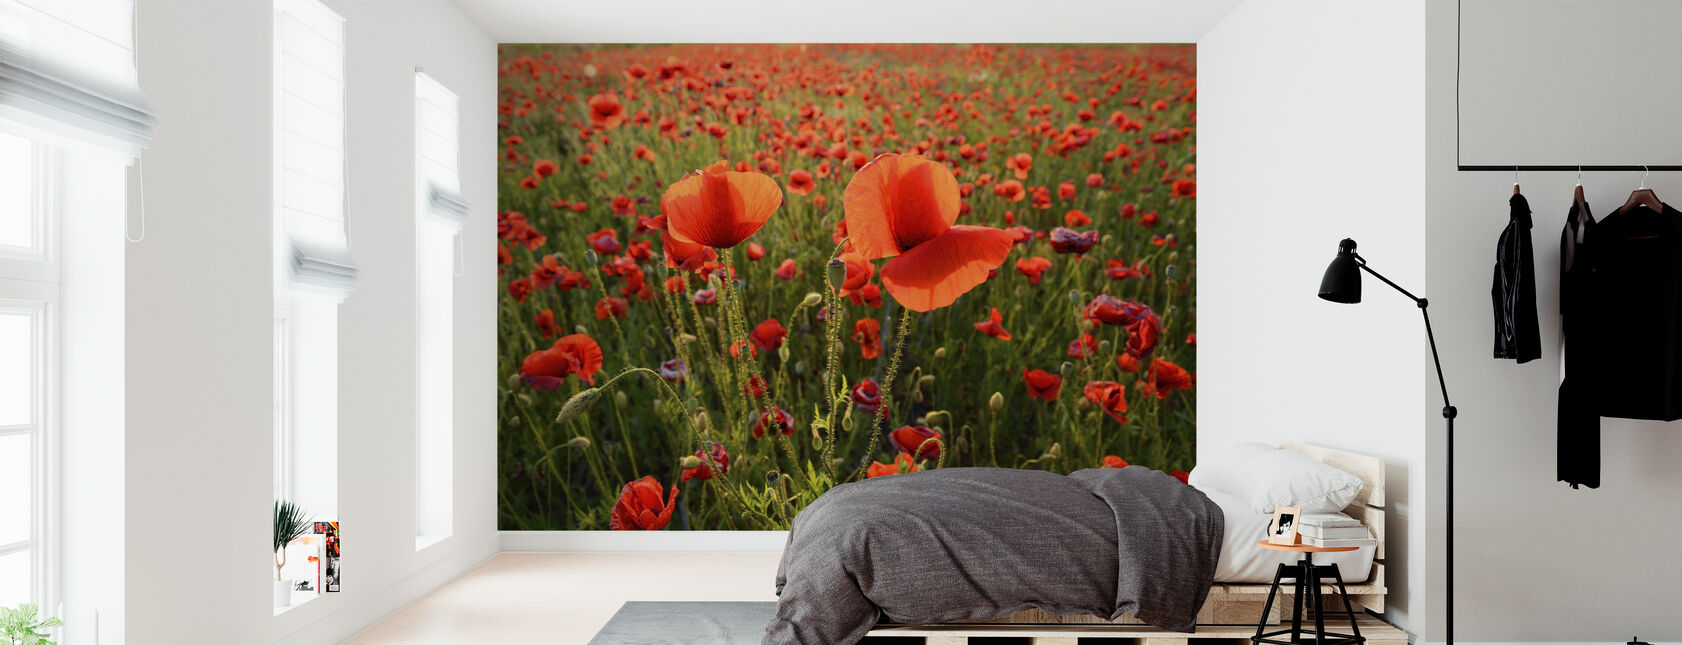 Poppy Fields - Wallpaper - Bedroom